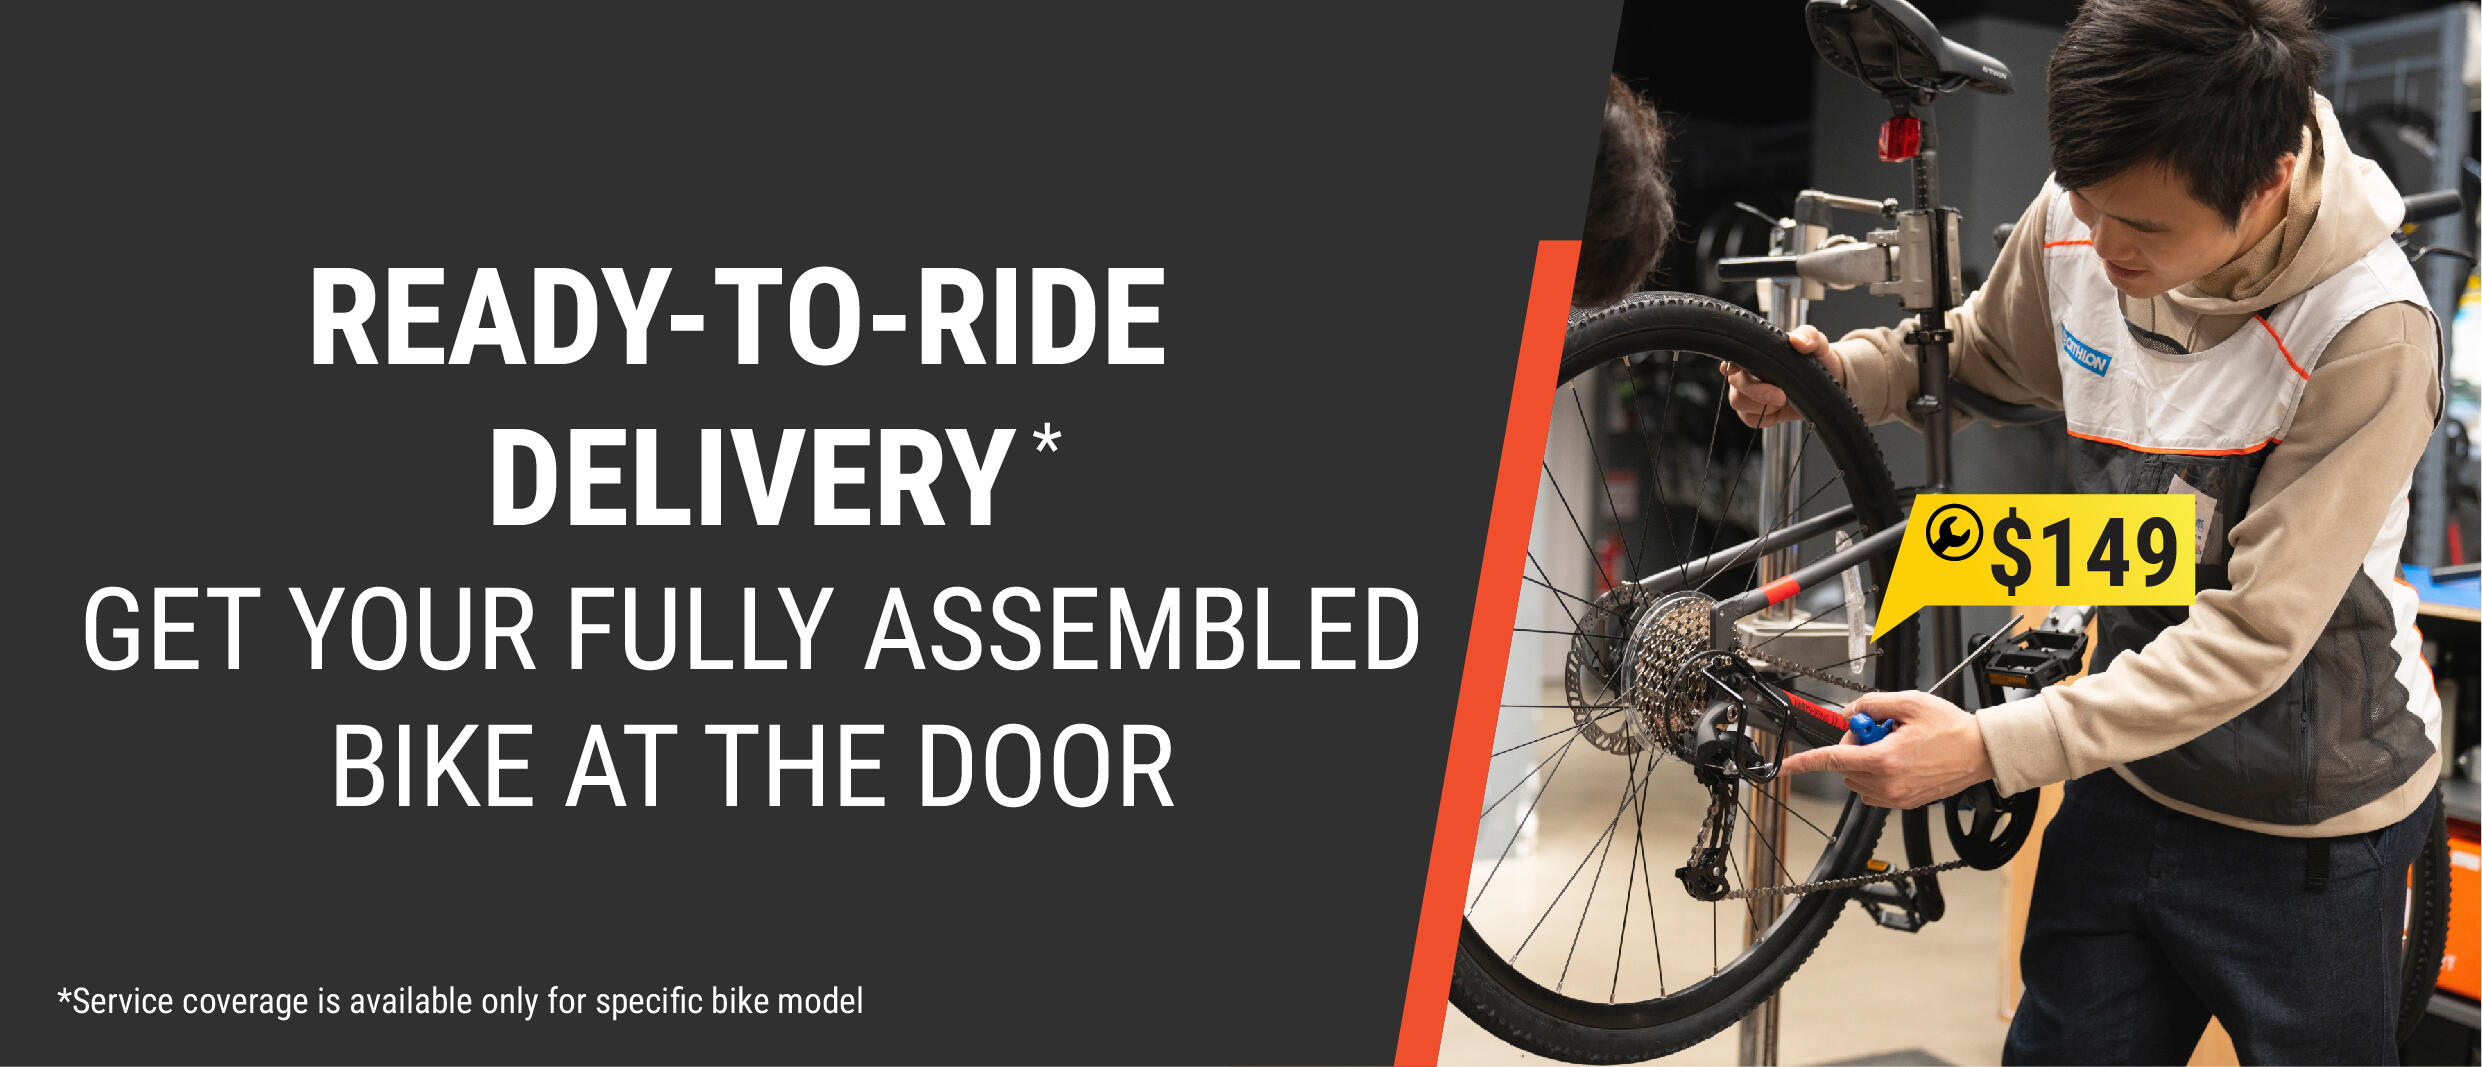 Decathlon provide bike assembly service that you can get your fully assembled bike at the door